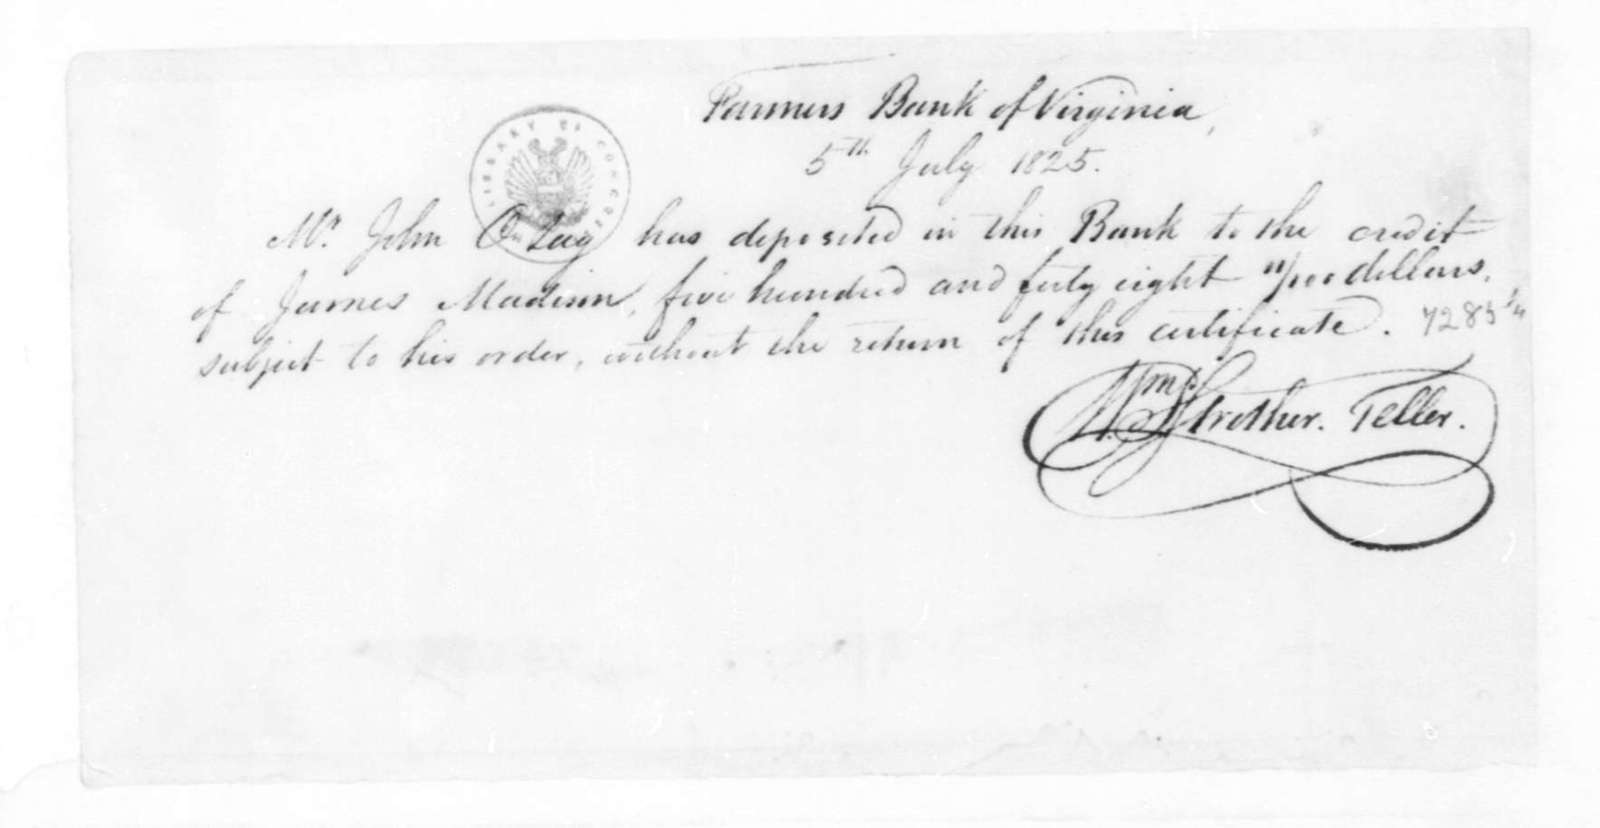 William Strother to John O. Lay, July 5, 1825. Receipt for deposit for James Madison.